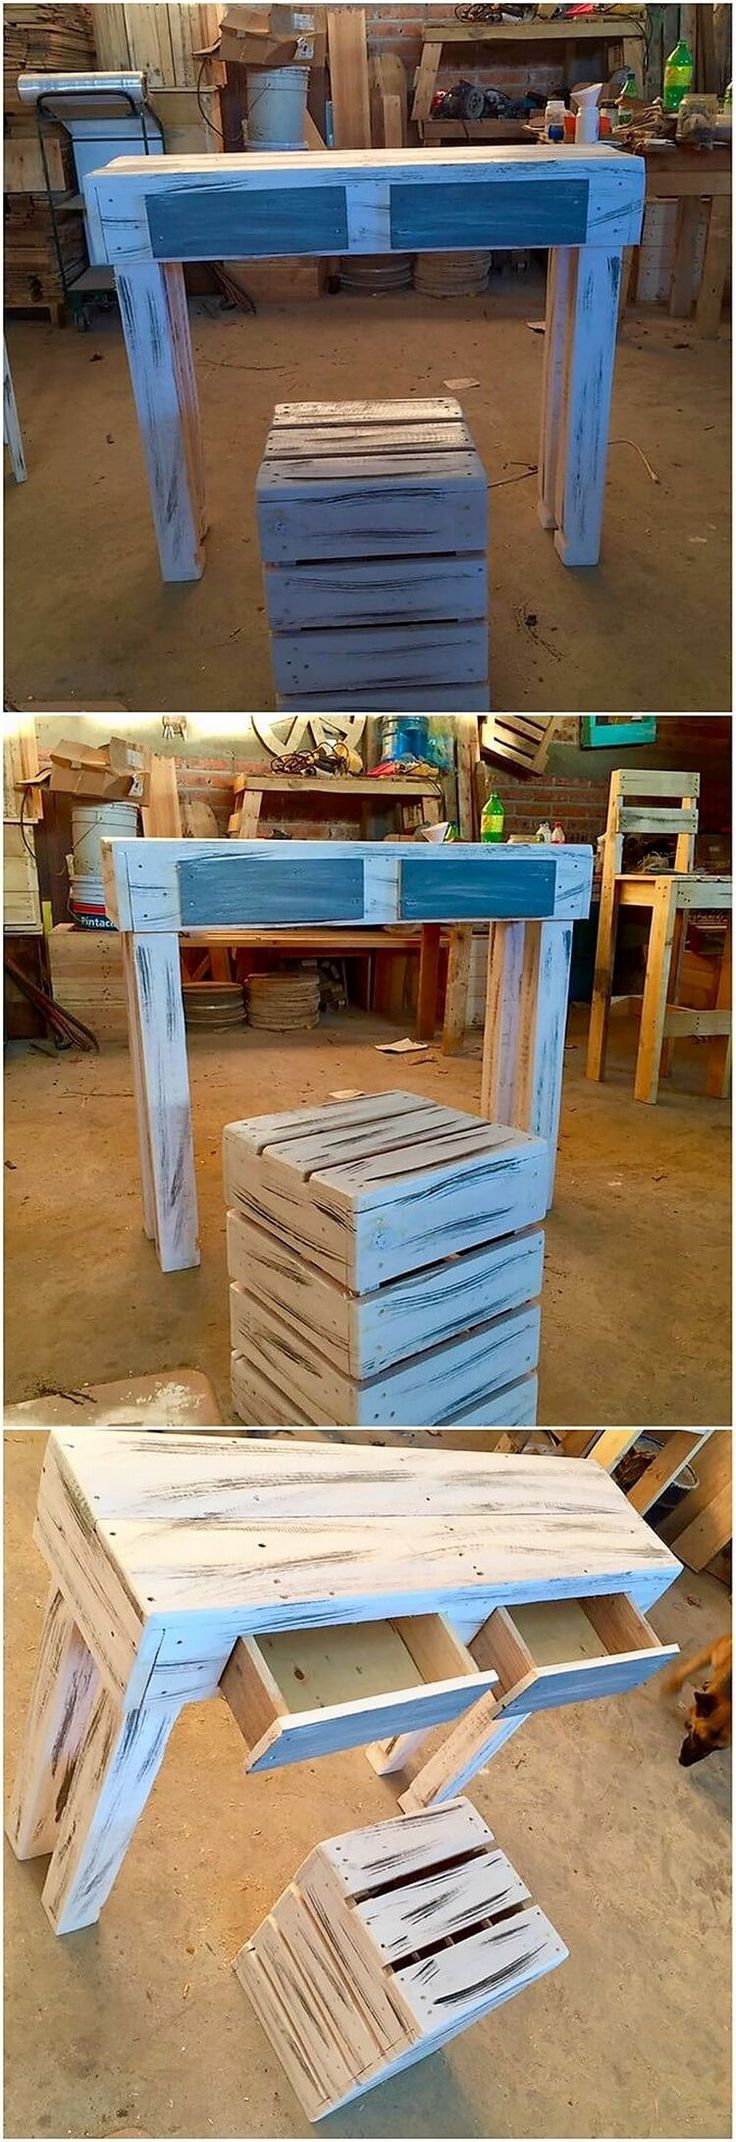 This wood pallet stylish study table creation is a masterpiece for your house kids room. You would love the rustic pattern wood pallet designing over the top of the table that make it look so awesome in appearance through the pairing that is done with the stool use into it.